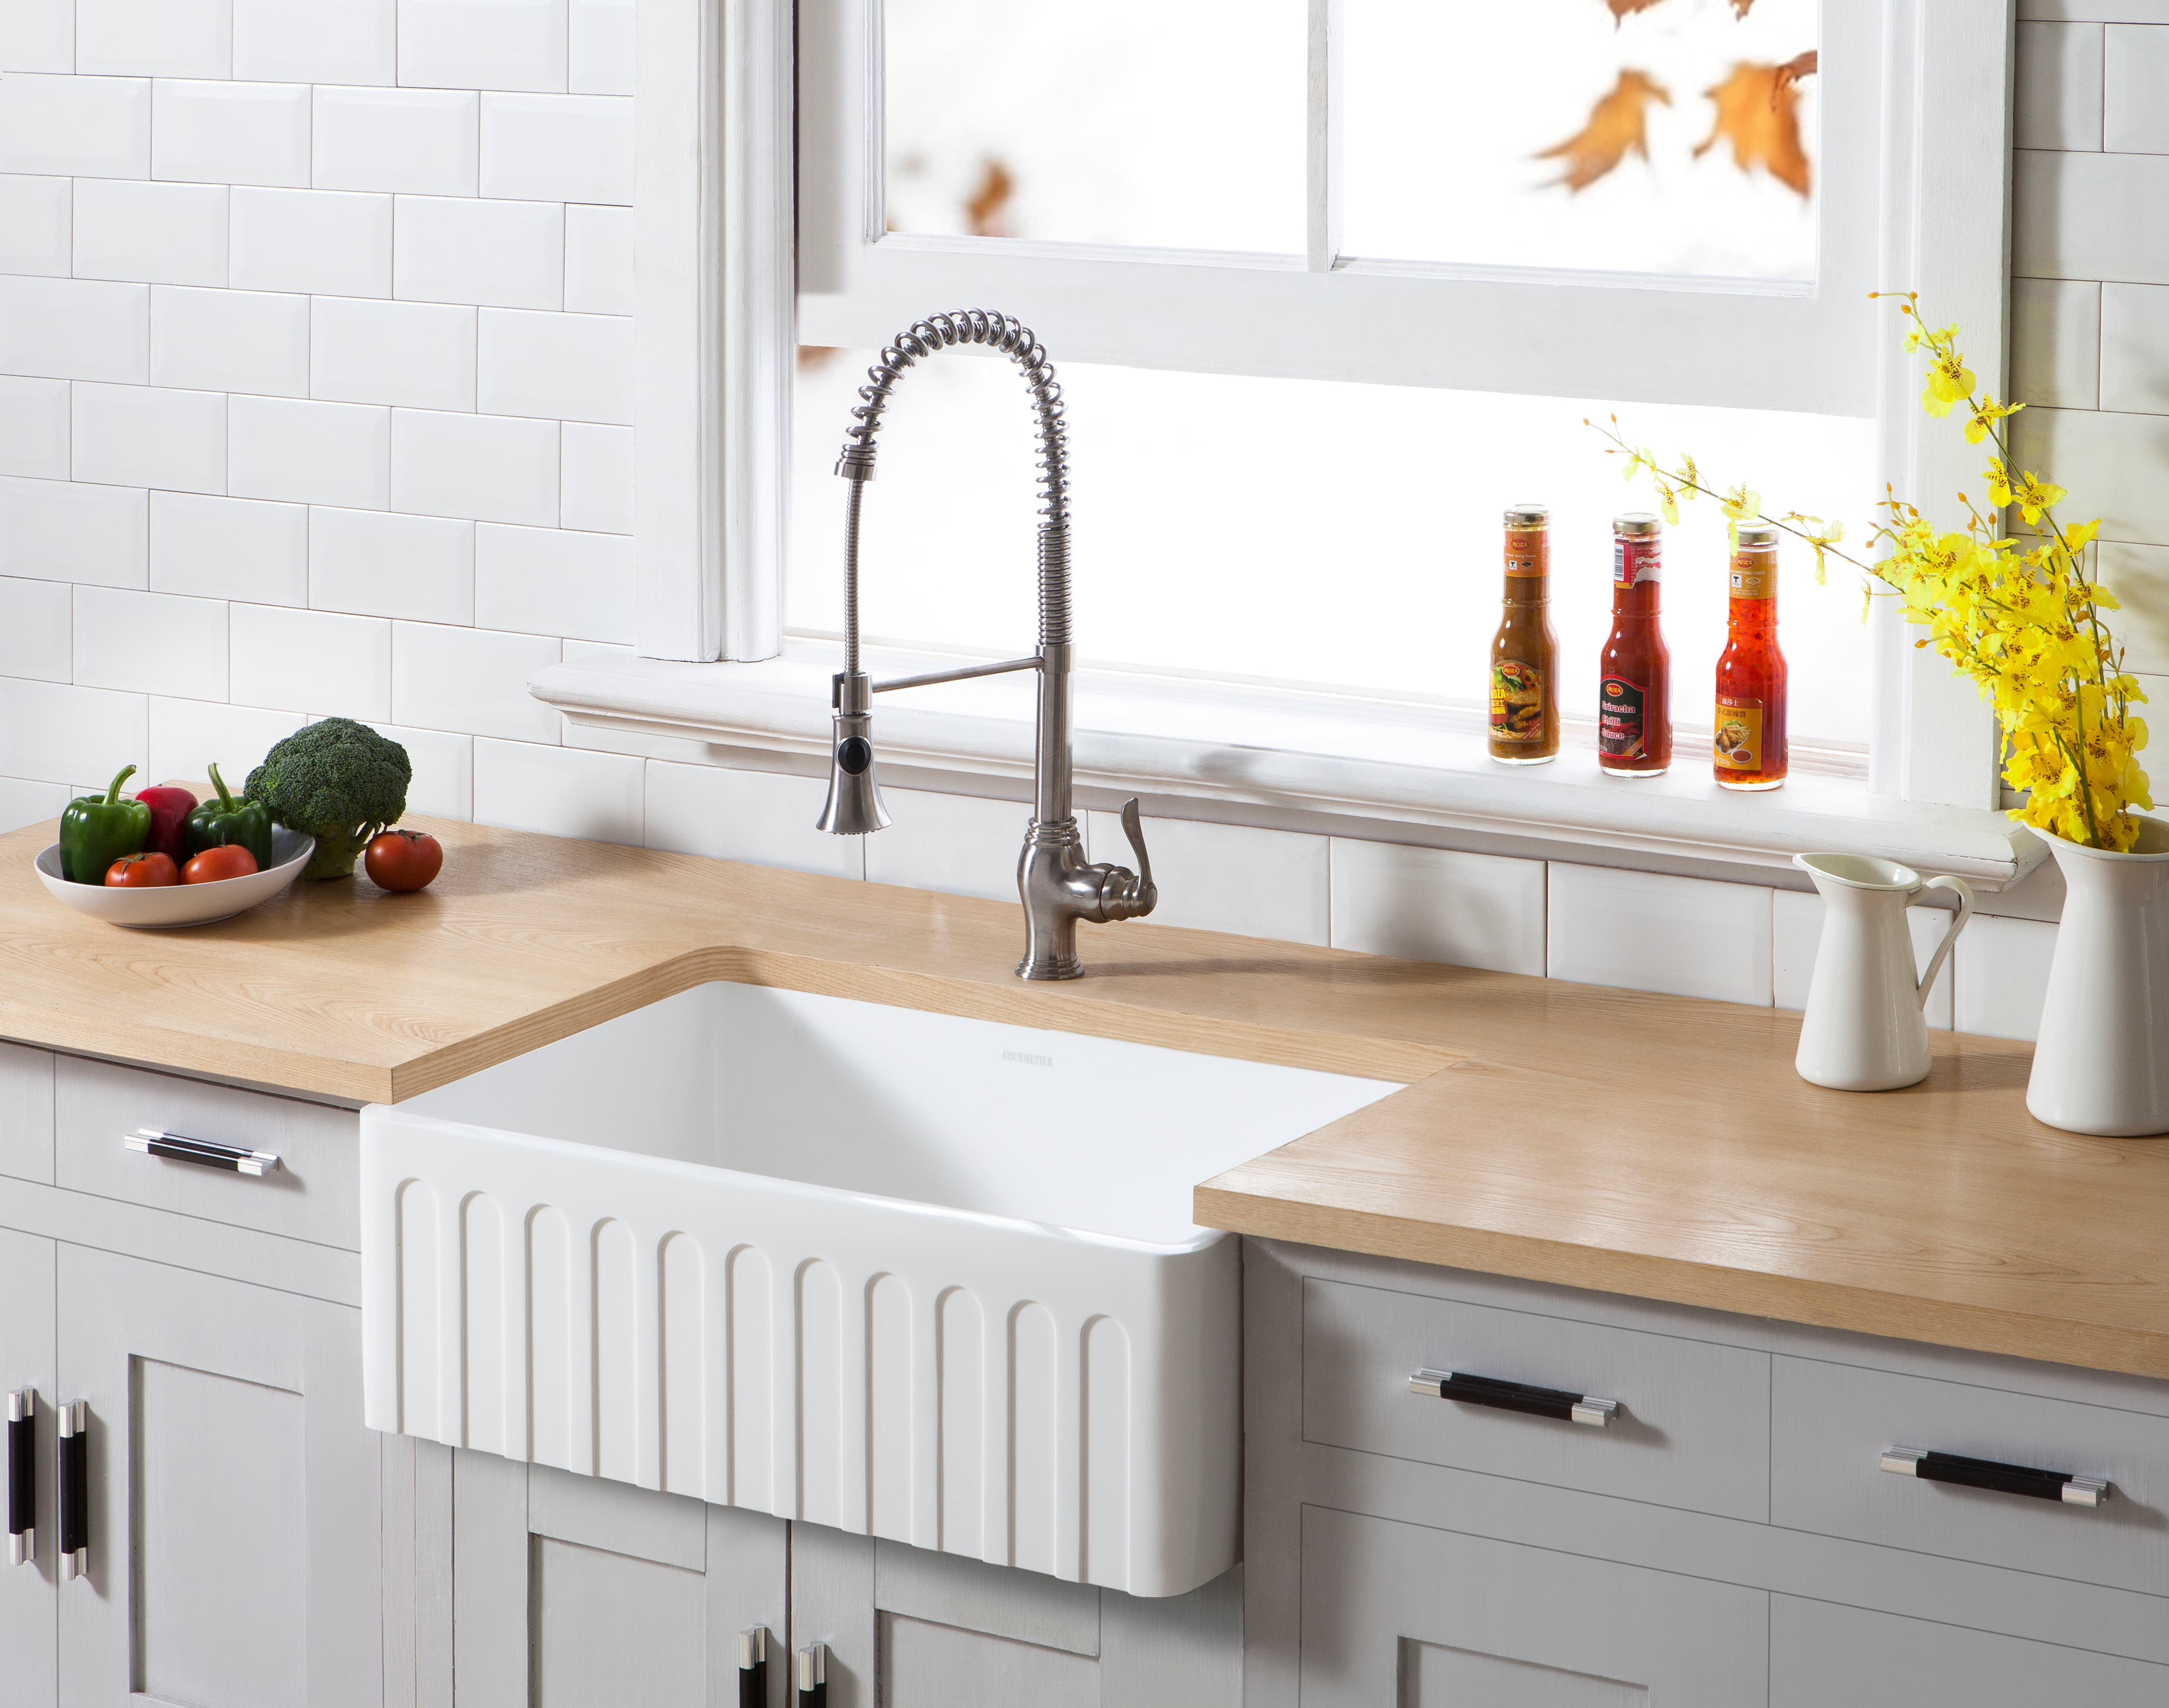 The Gourmetier Farmhouse Kitchen Sink Meshes Durability with ...